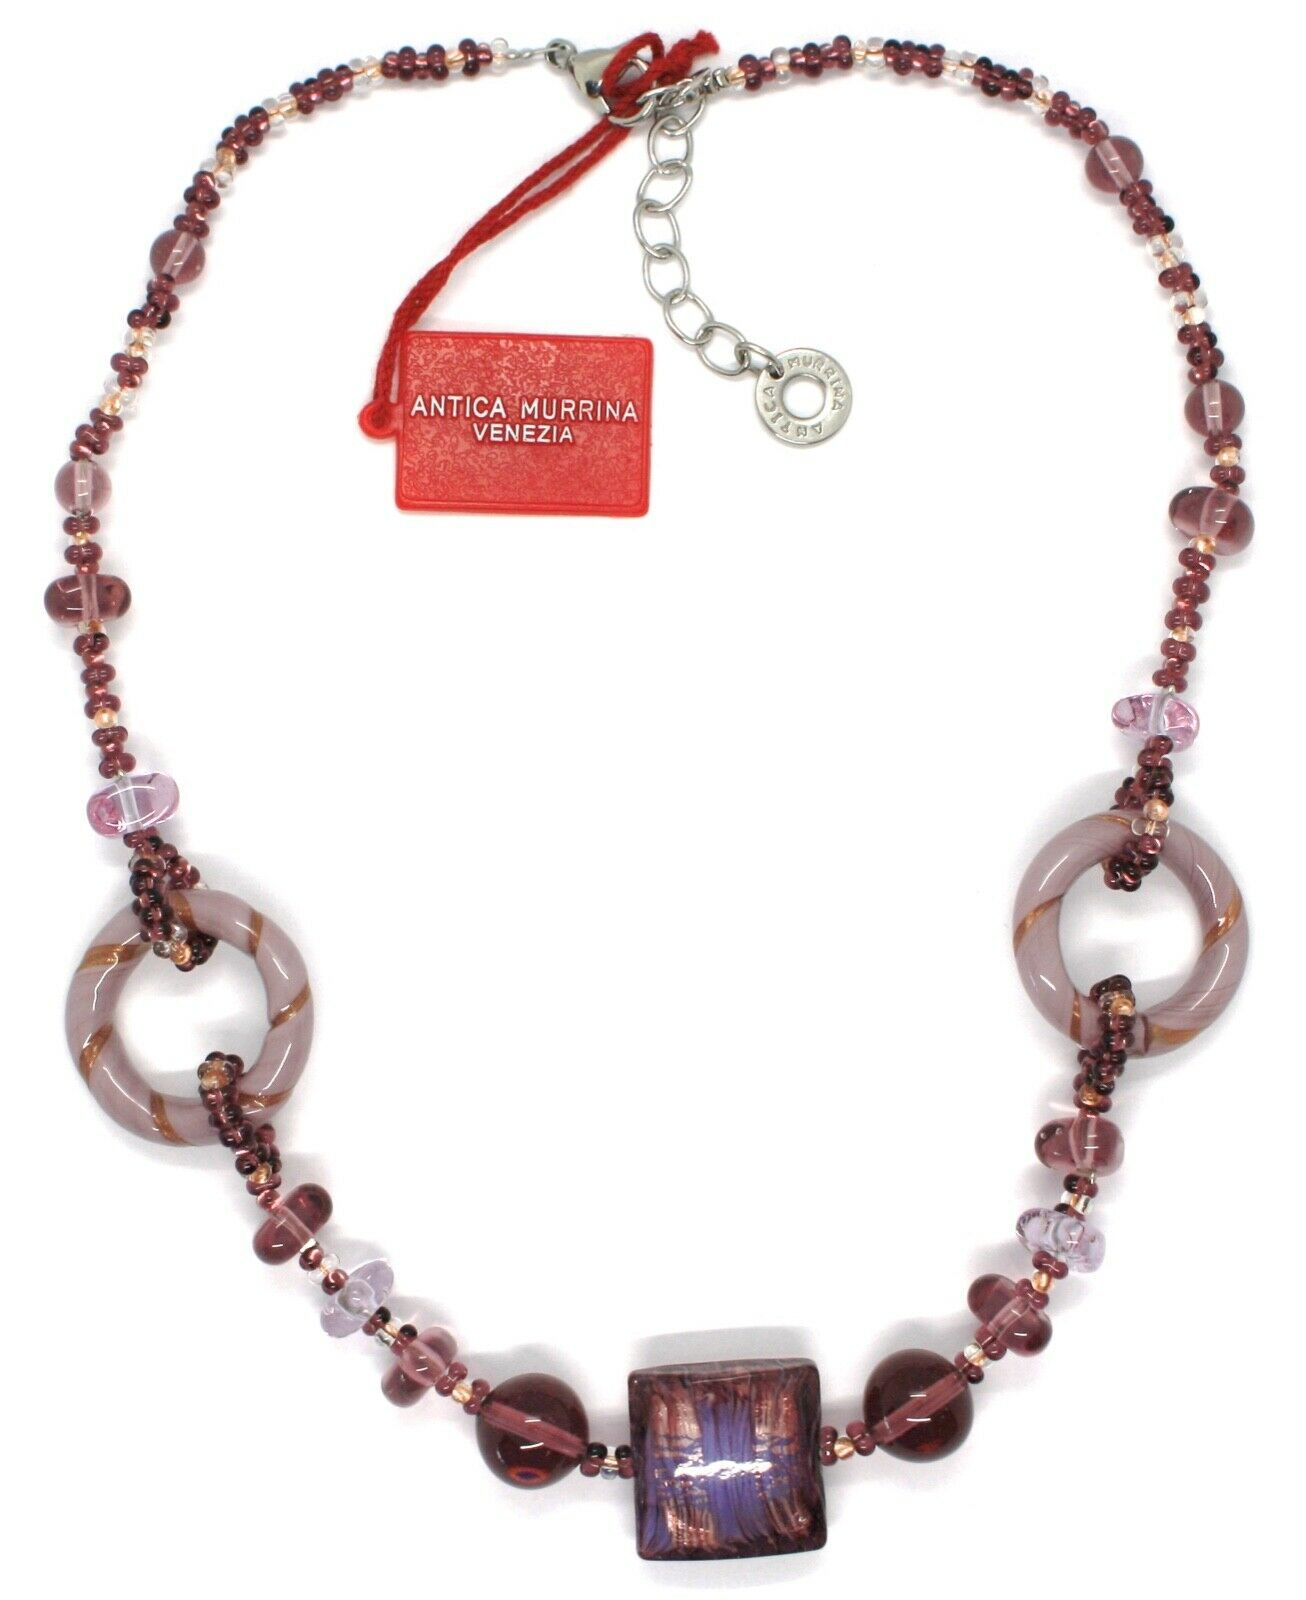 Necklace Antique Murrina,CO666A05,Circles,Squares,Spheres,Purple,Glass Murano